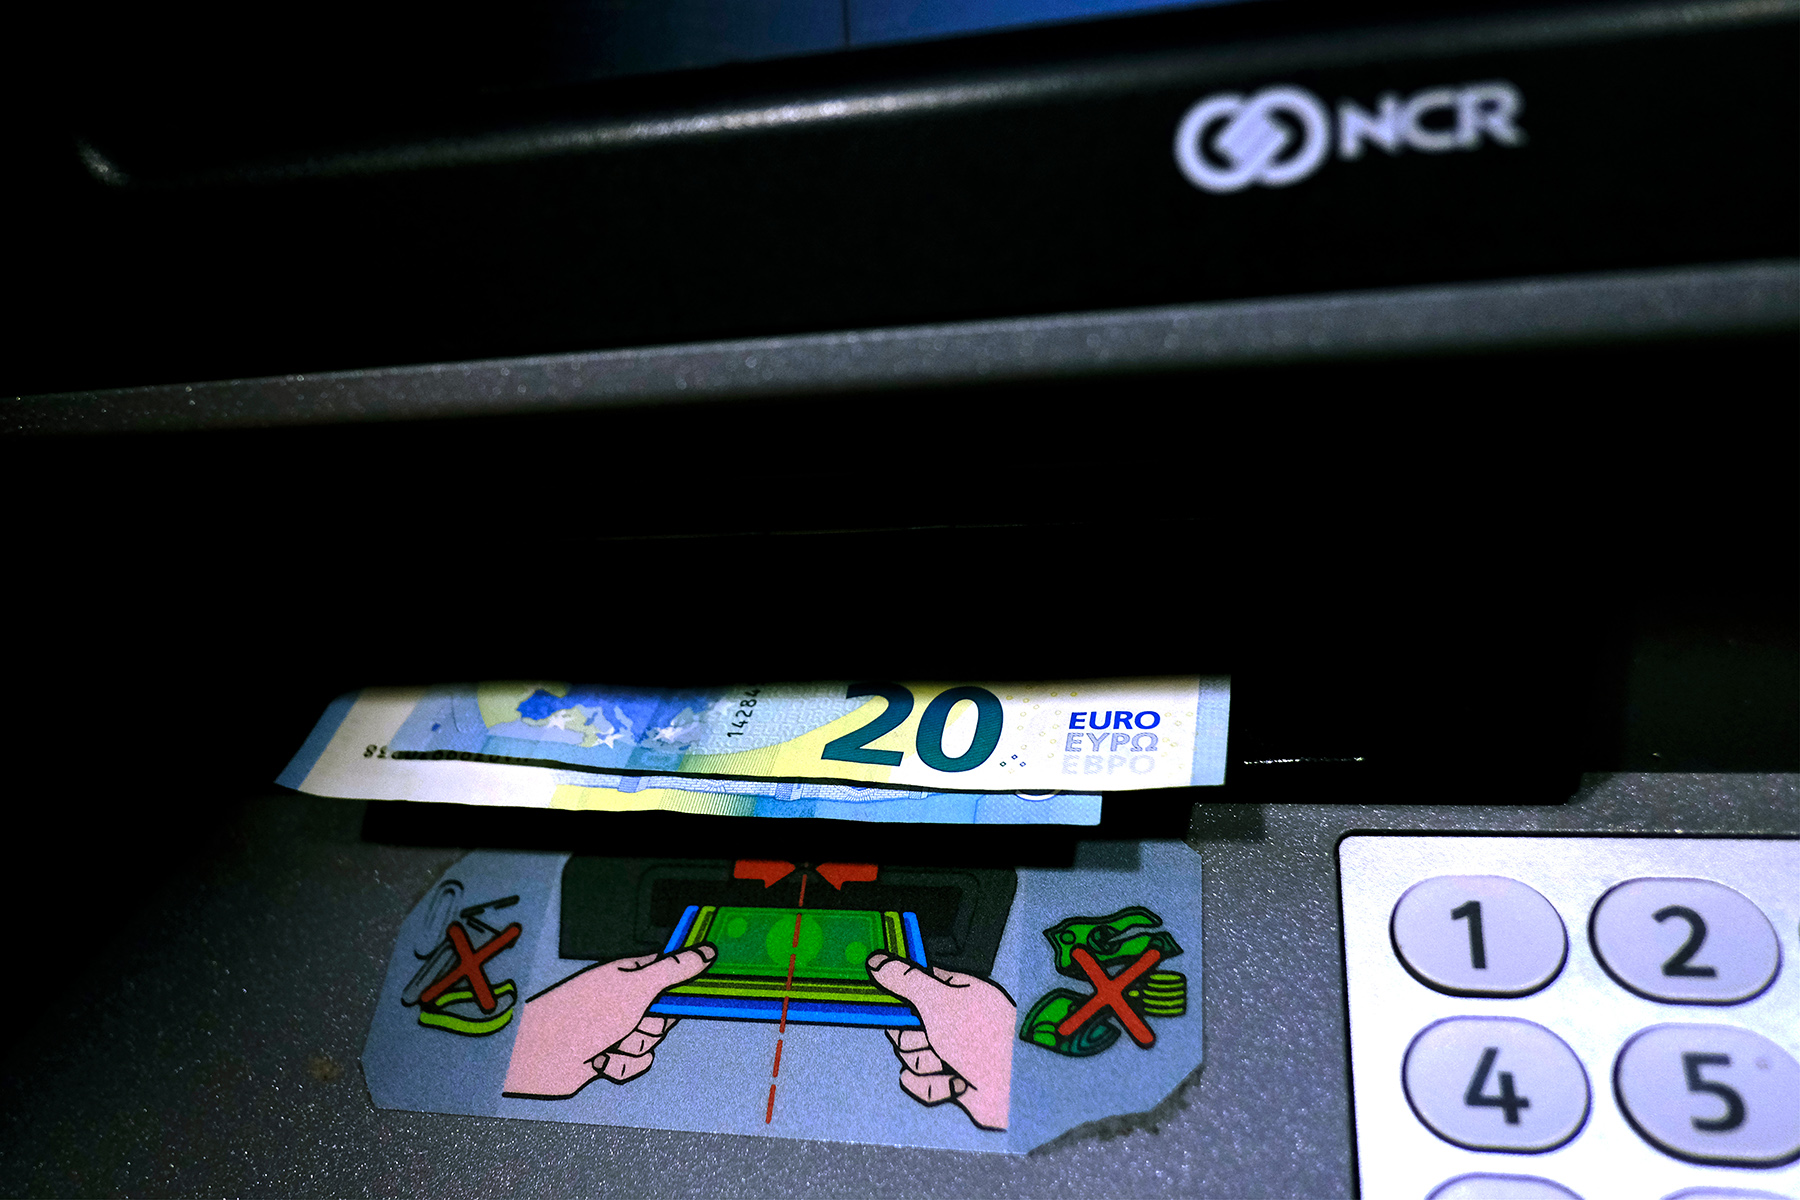 Cash is still widely used in Belgium